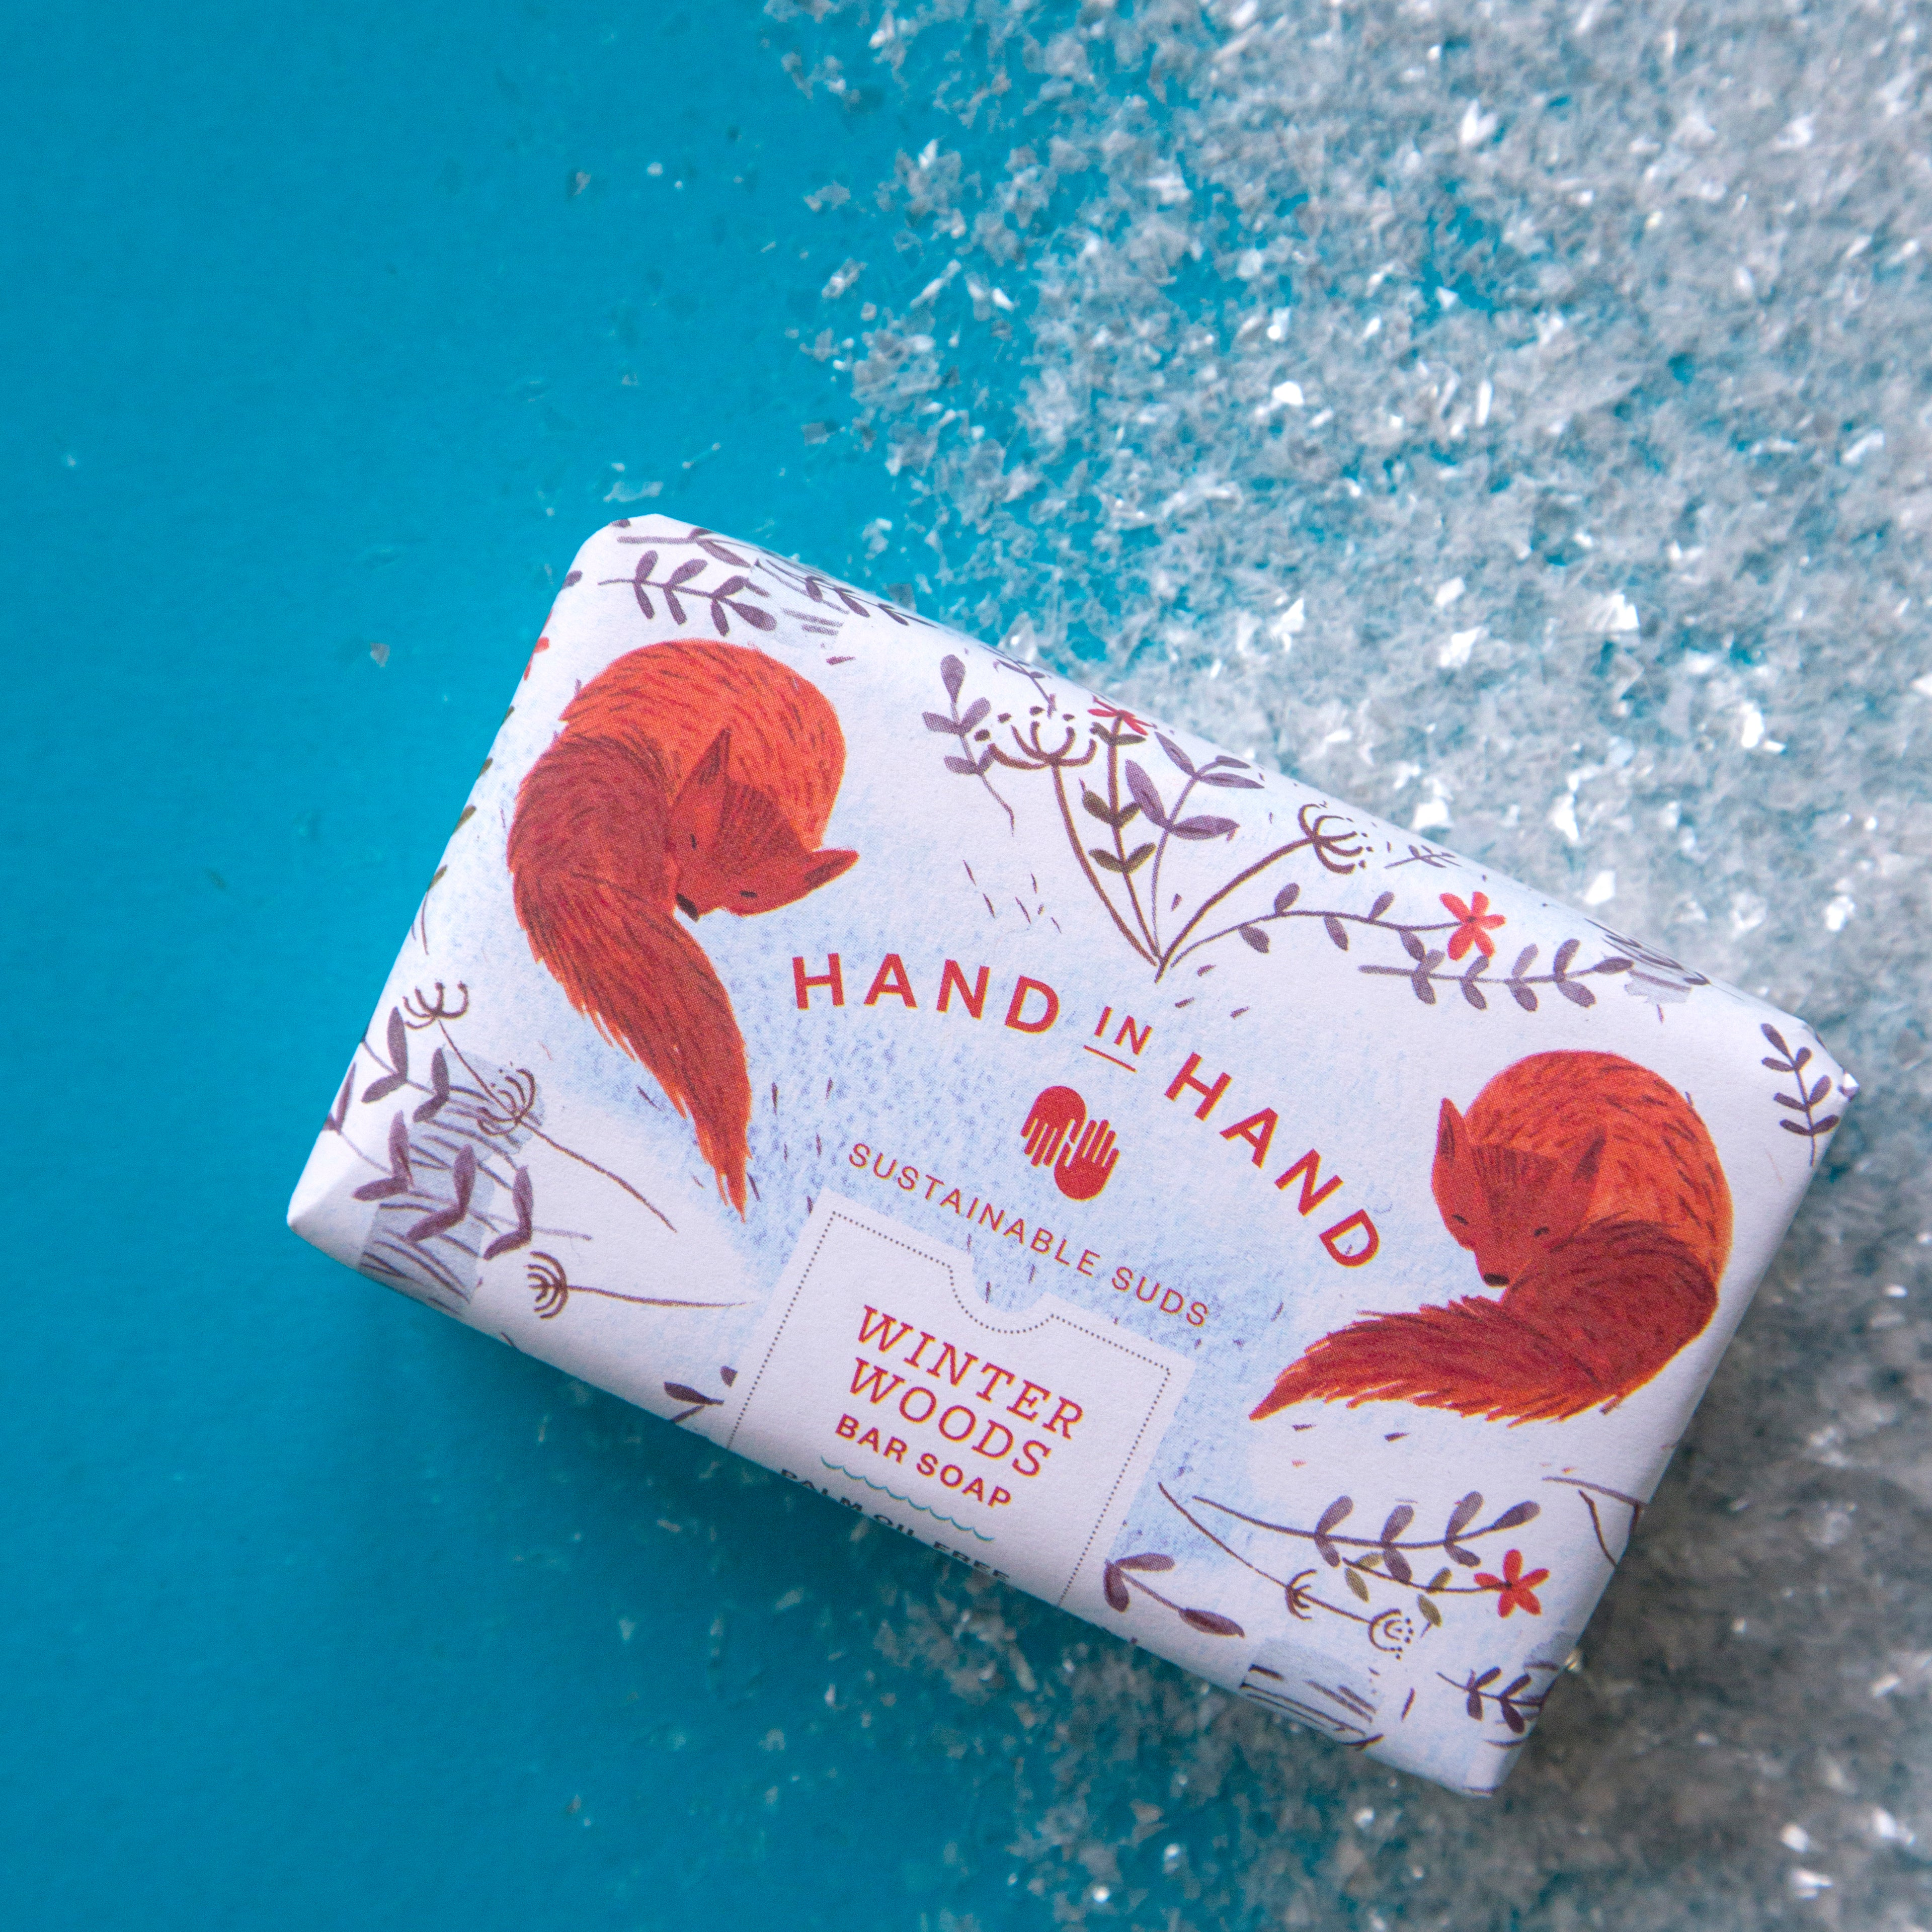 WINTER WOODS HOLIDAY BAR SOAP